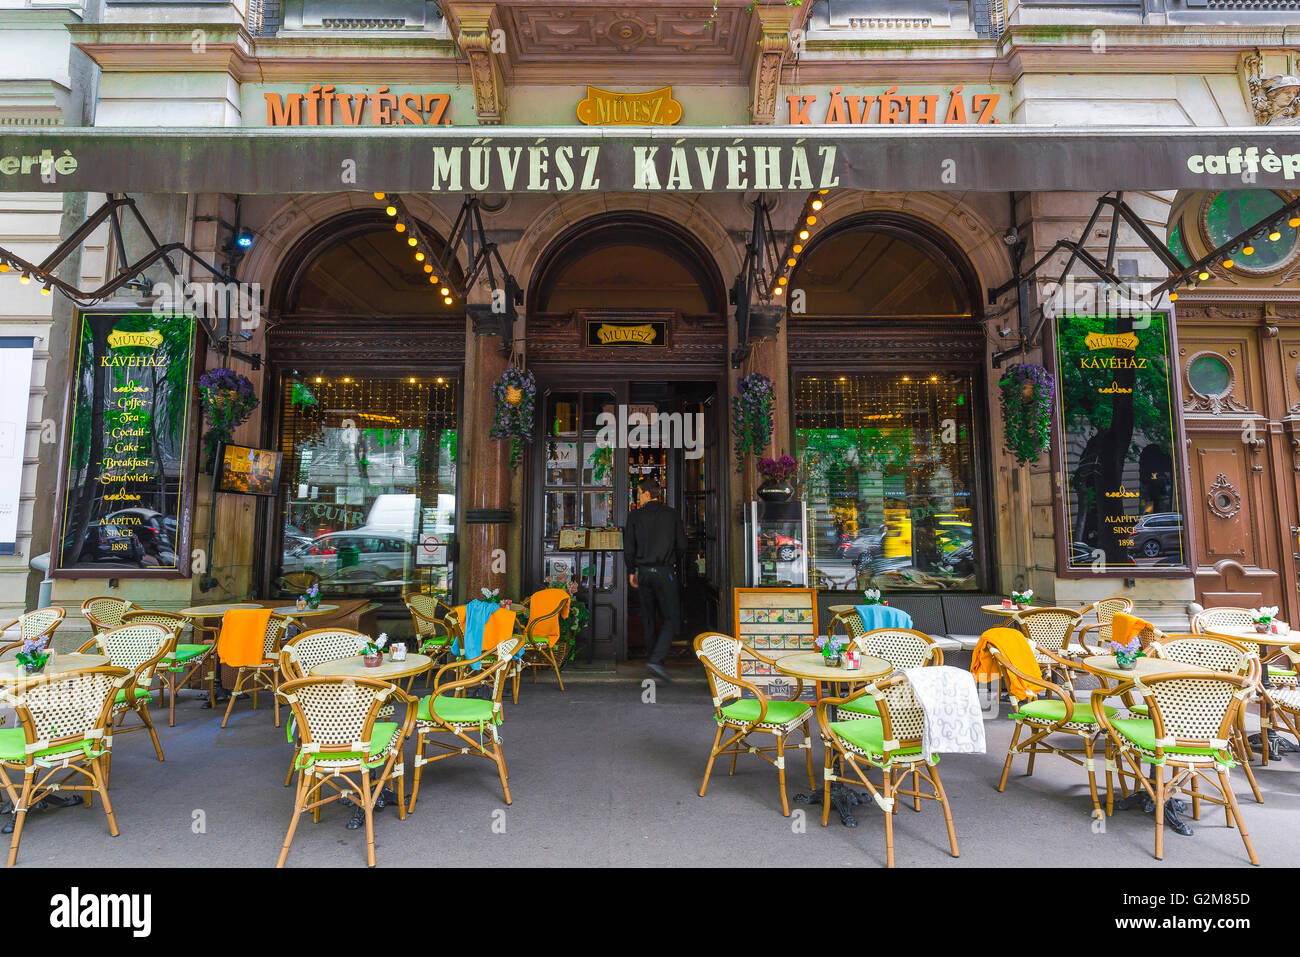 The Muvesz Coffee House on Andrassy Ut in the Terezvaros district of Budapest, Hungary. - Stock Image